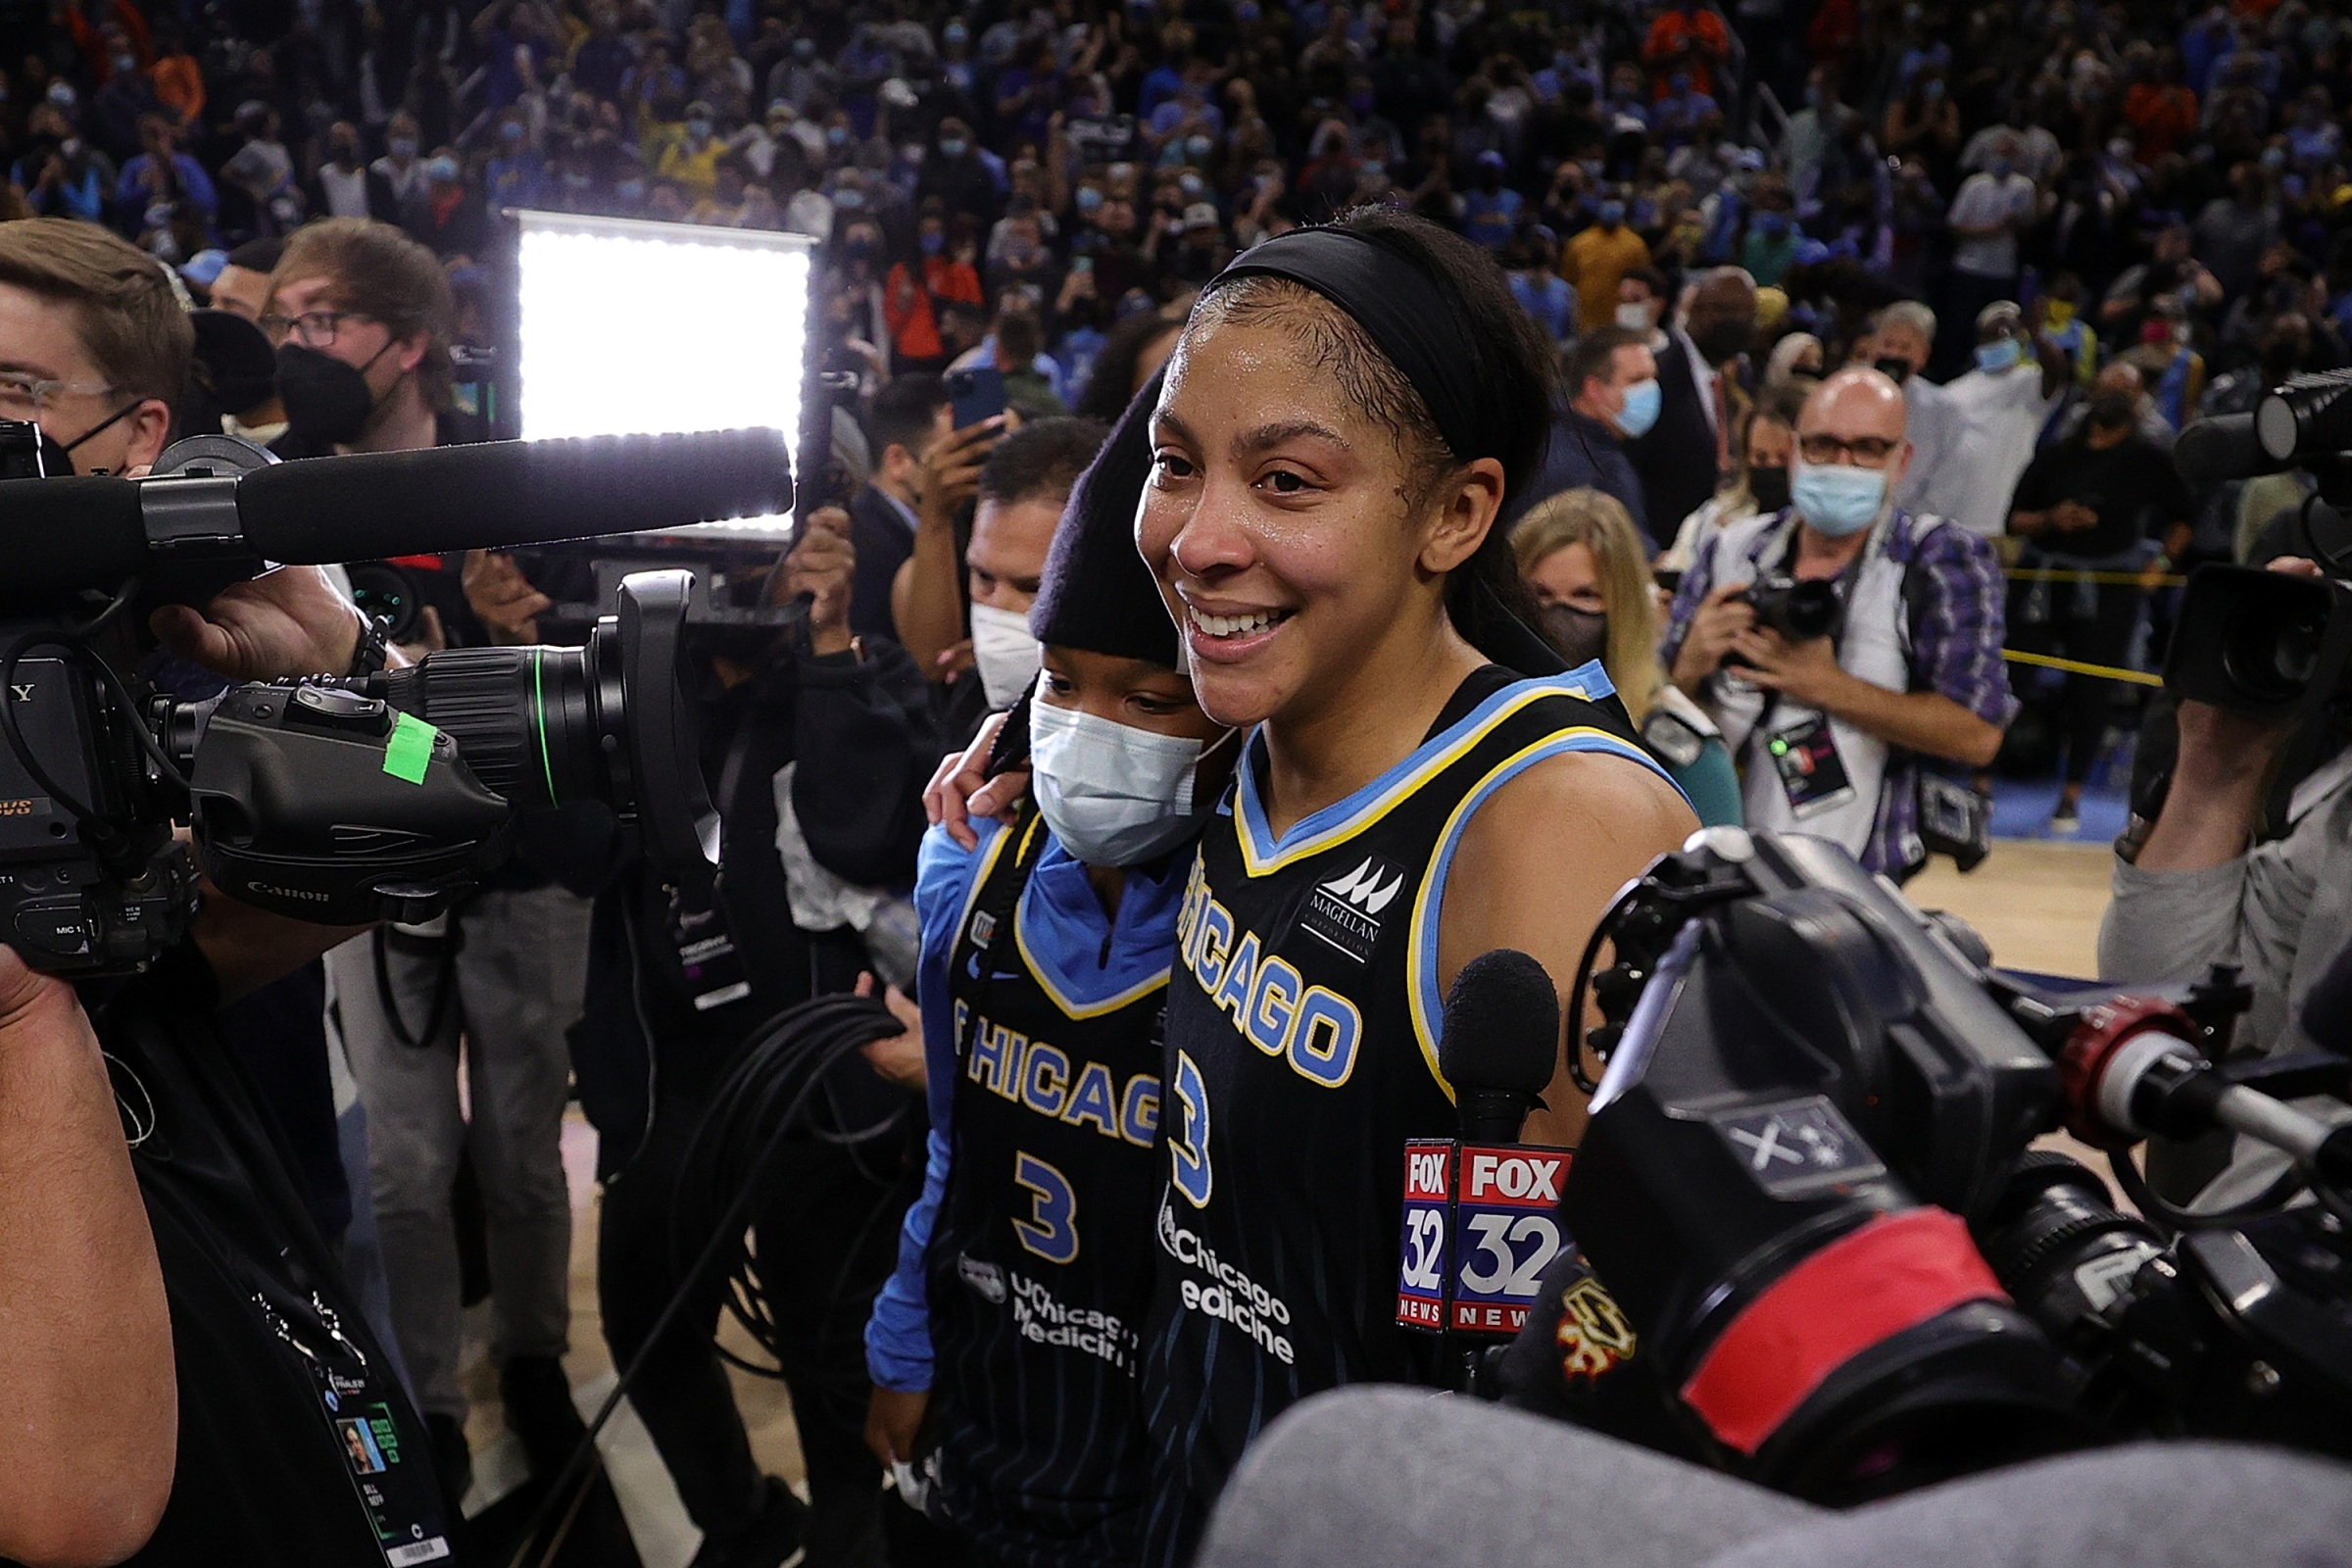 Candace Parker #3 of the Chicago Sky celebrates after defeating the Phoenix Mercury 80-74 in Game Four of the WNBA Finals to win the championship at Wintrust Arena on October 17, 2021 in Chicago, Illinois.